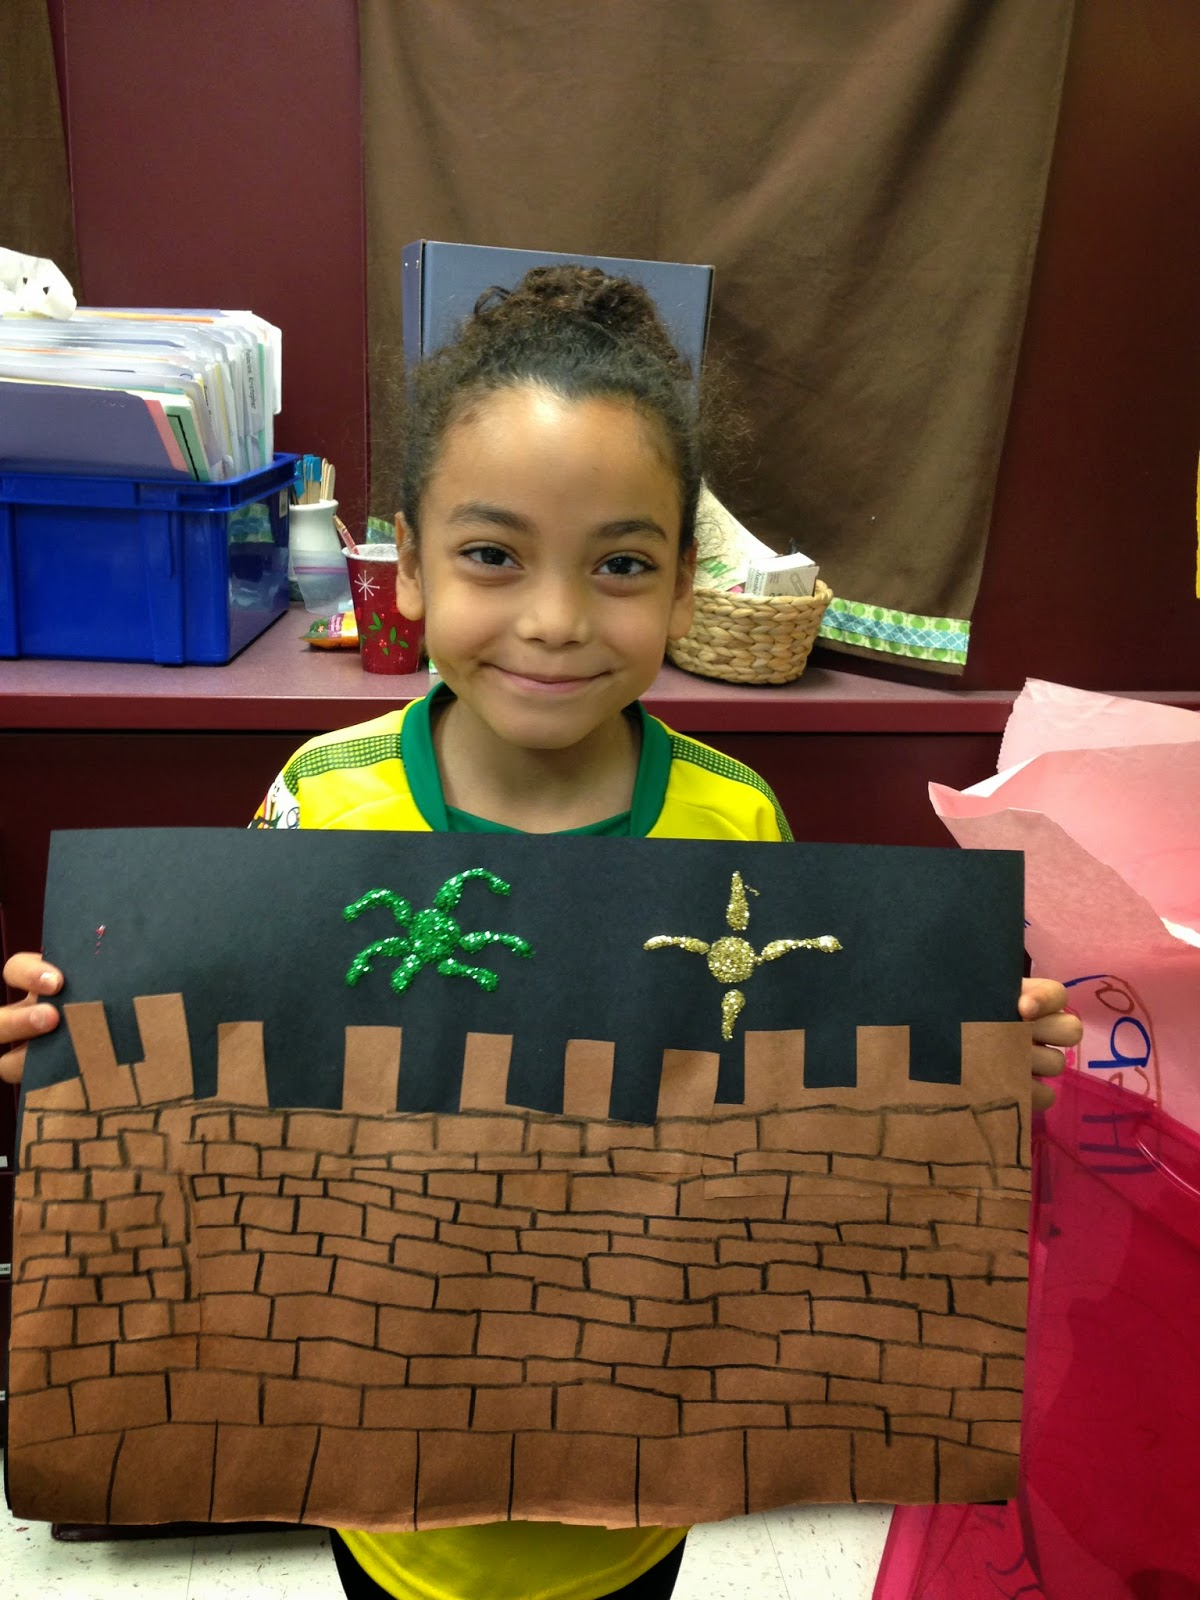 The Meek Moose The Great Wall Of China Building Challenge